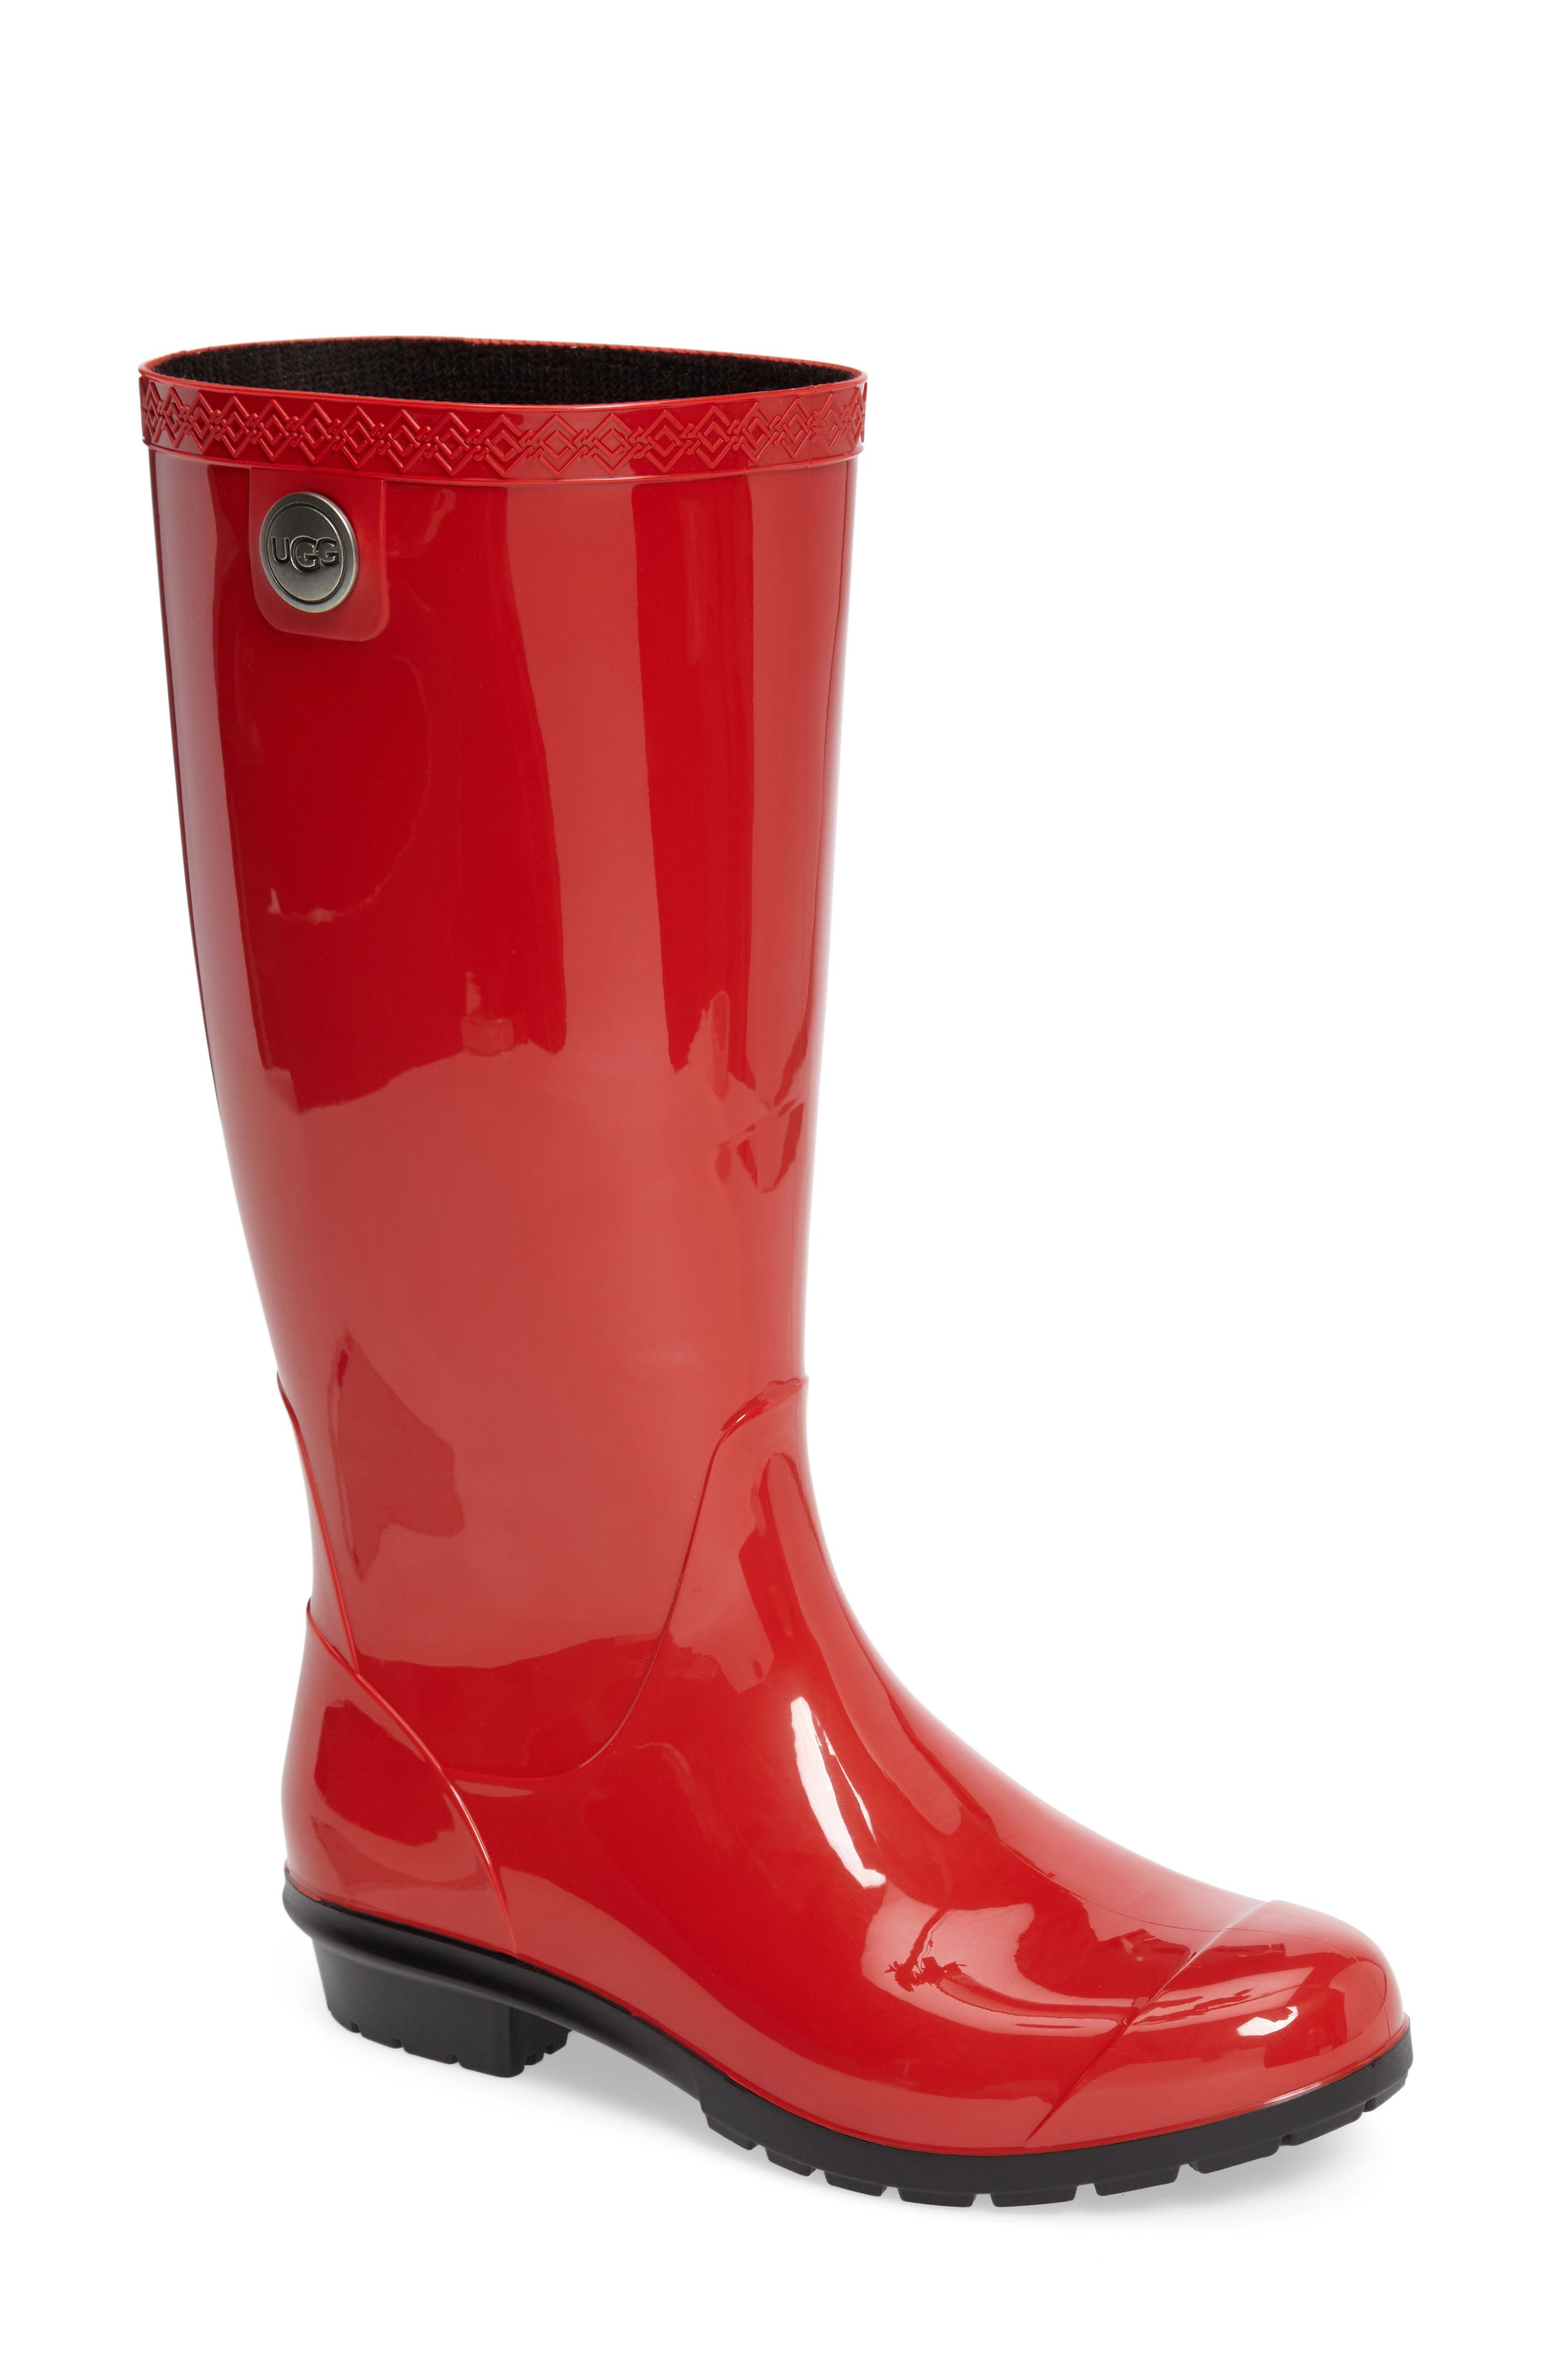 Shopping for Cheap Rain boots at colorful7smile Store and more from on 0549sahibi.tk,the Leading Trading Marketplace from China.